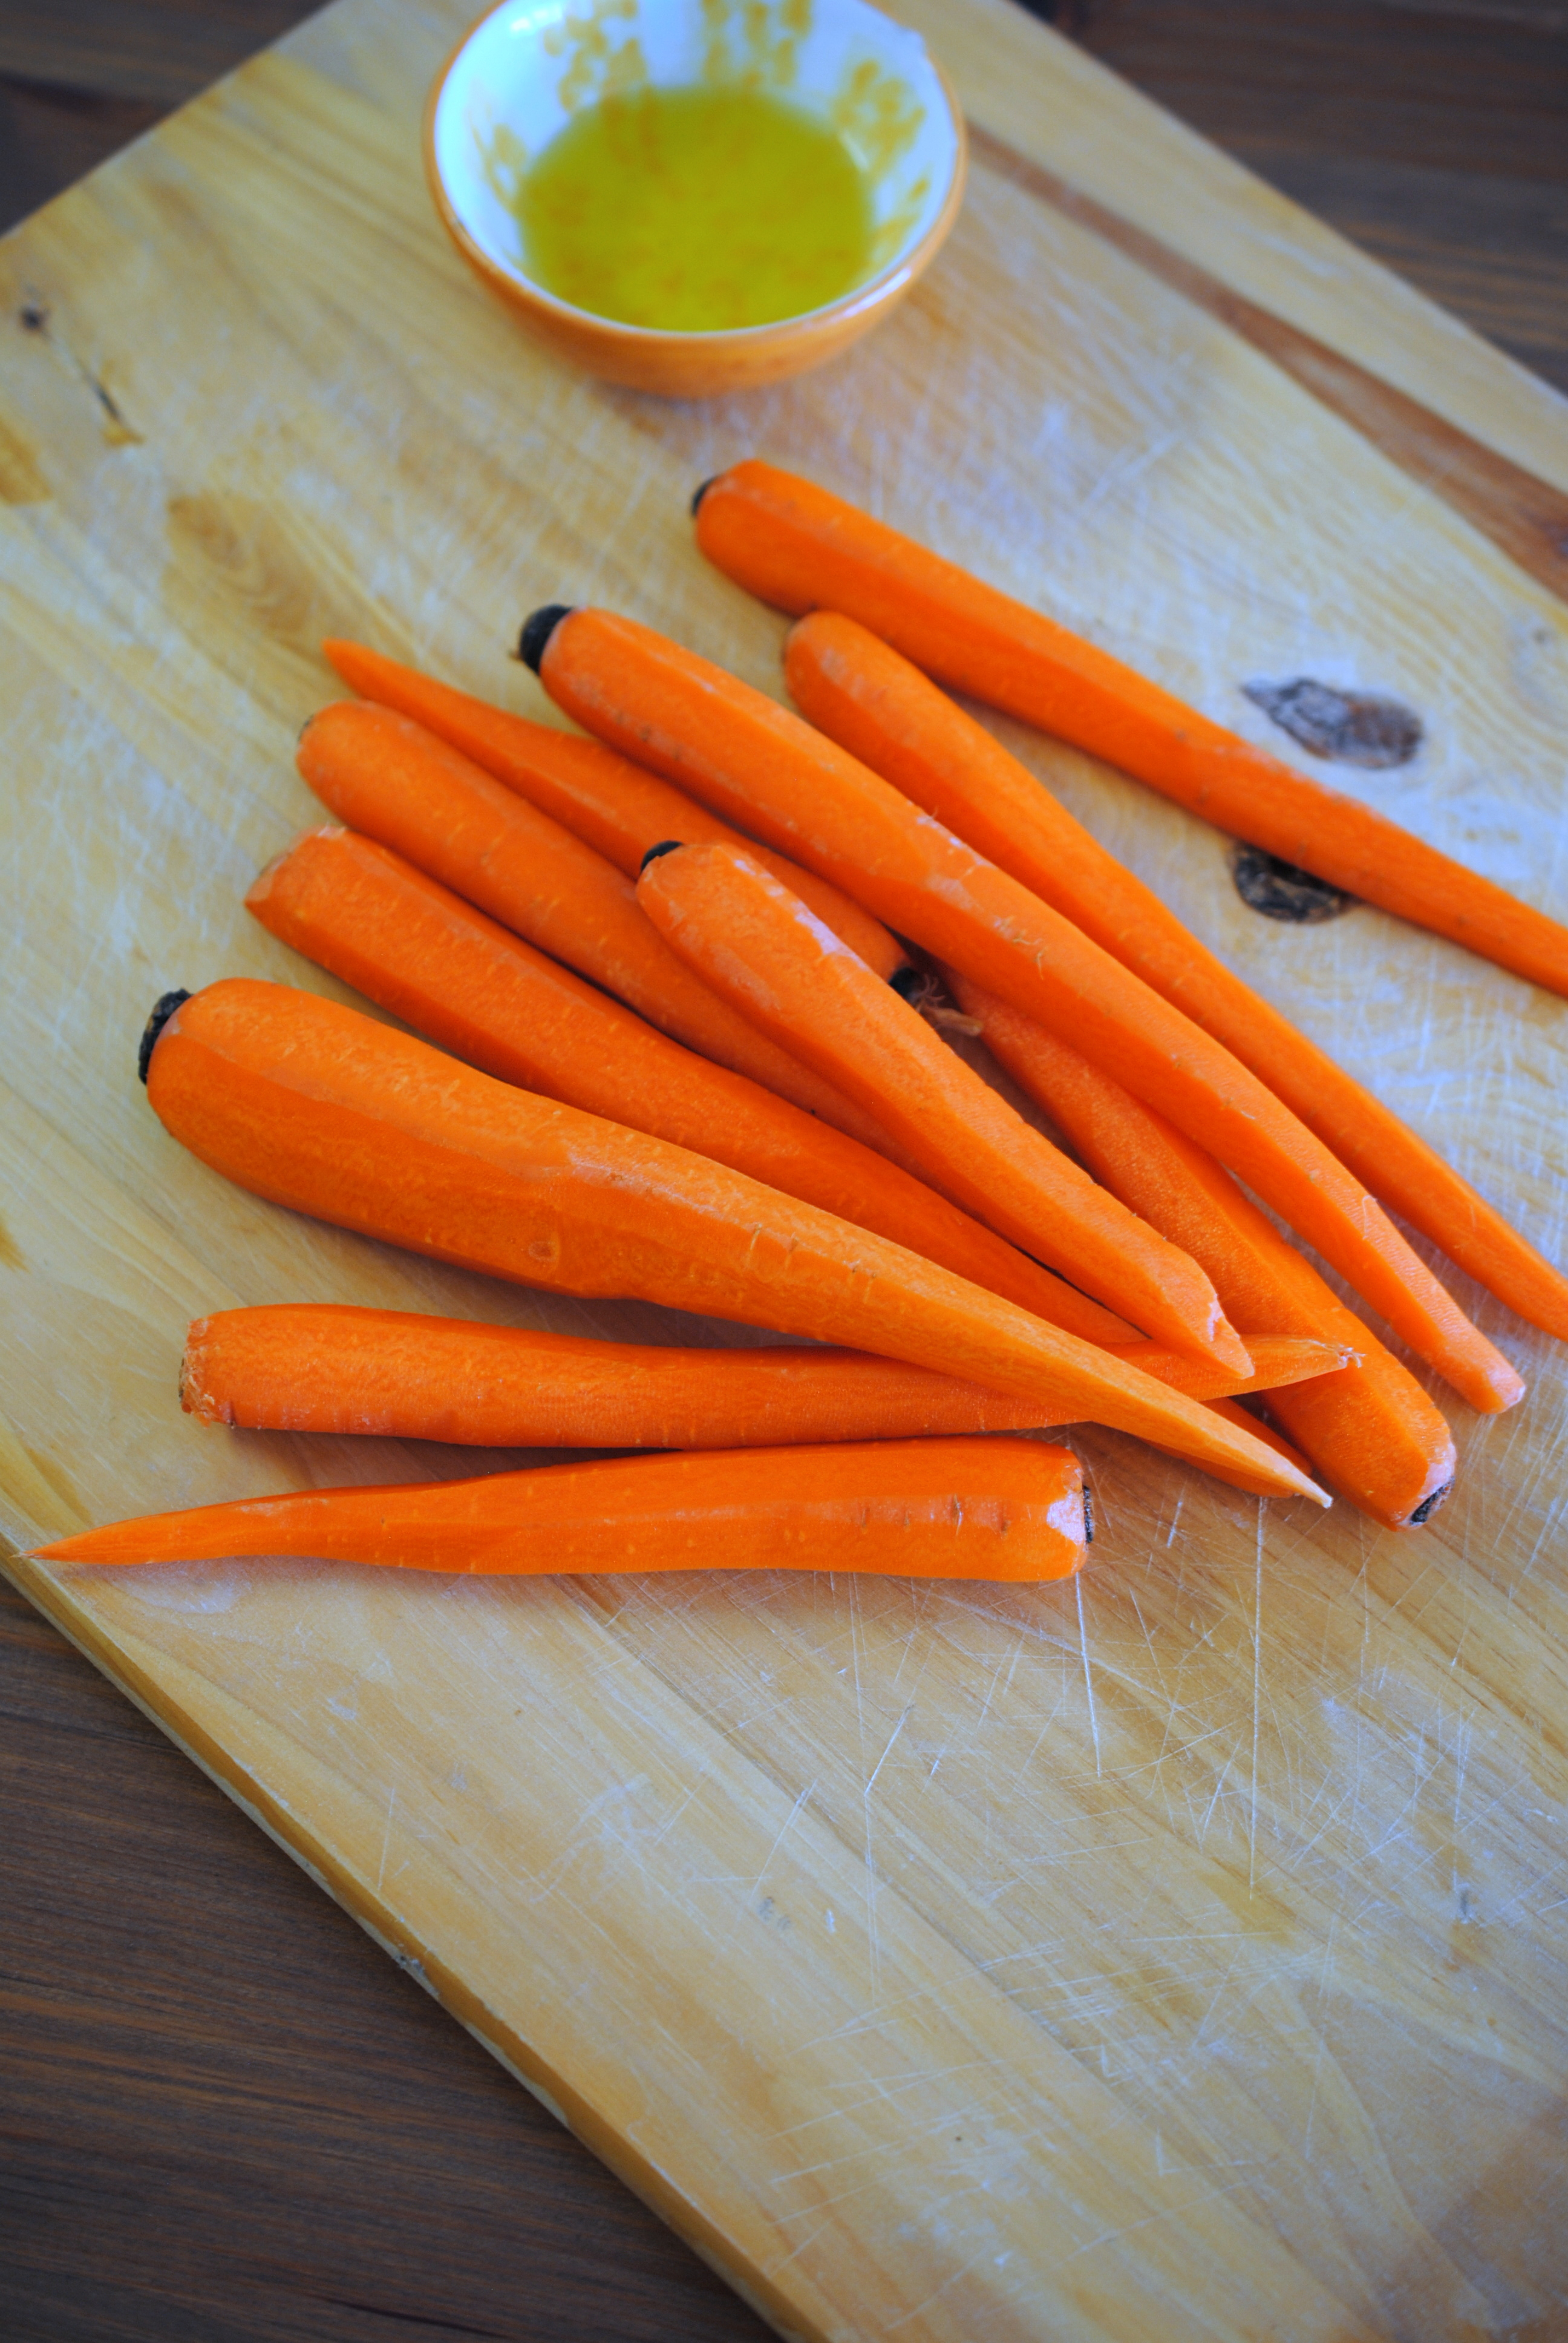 CarrotFries_whole carrots